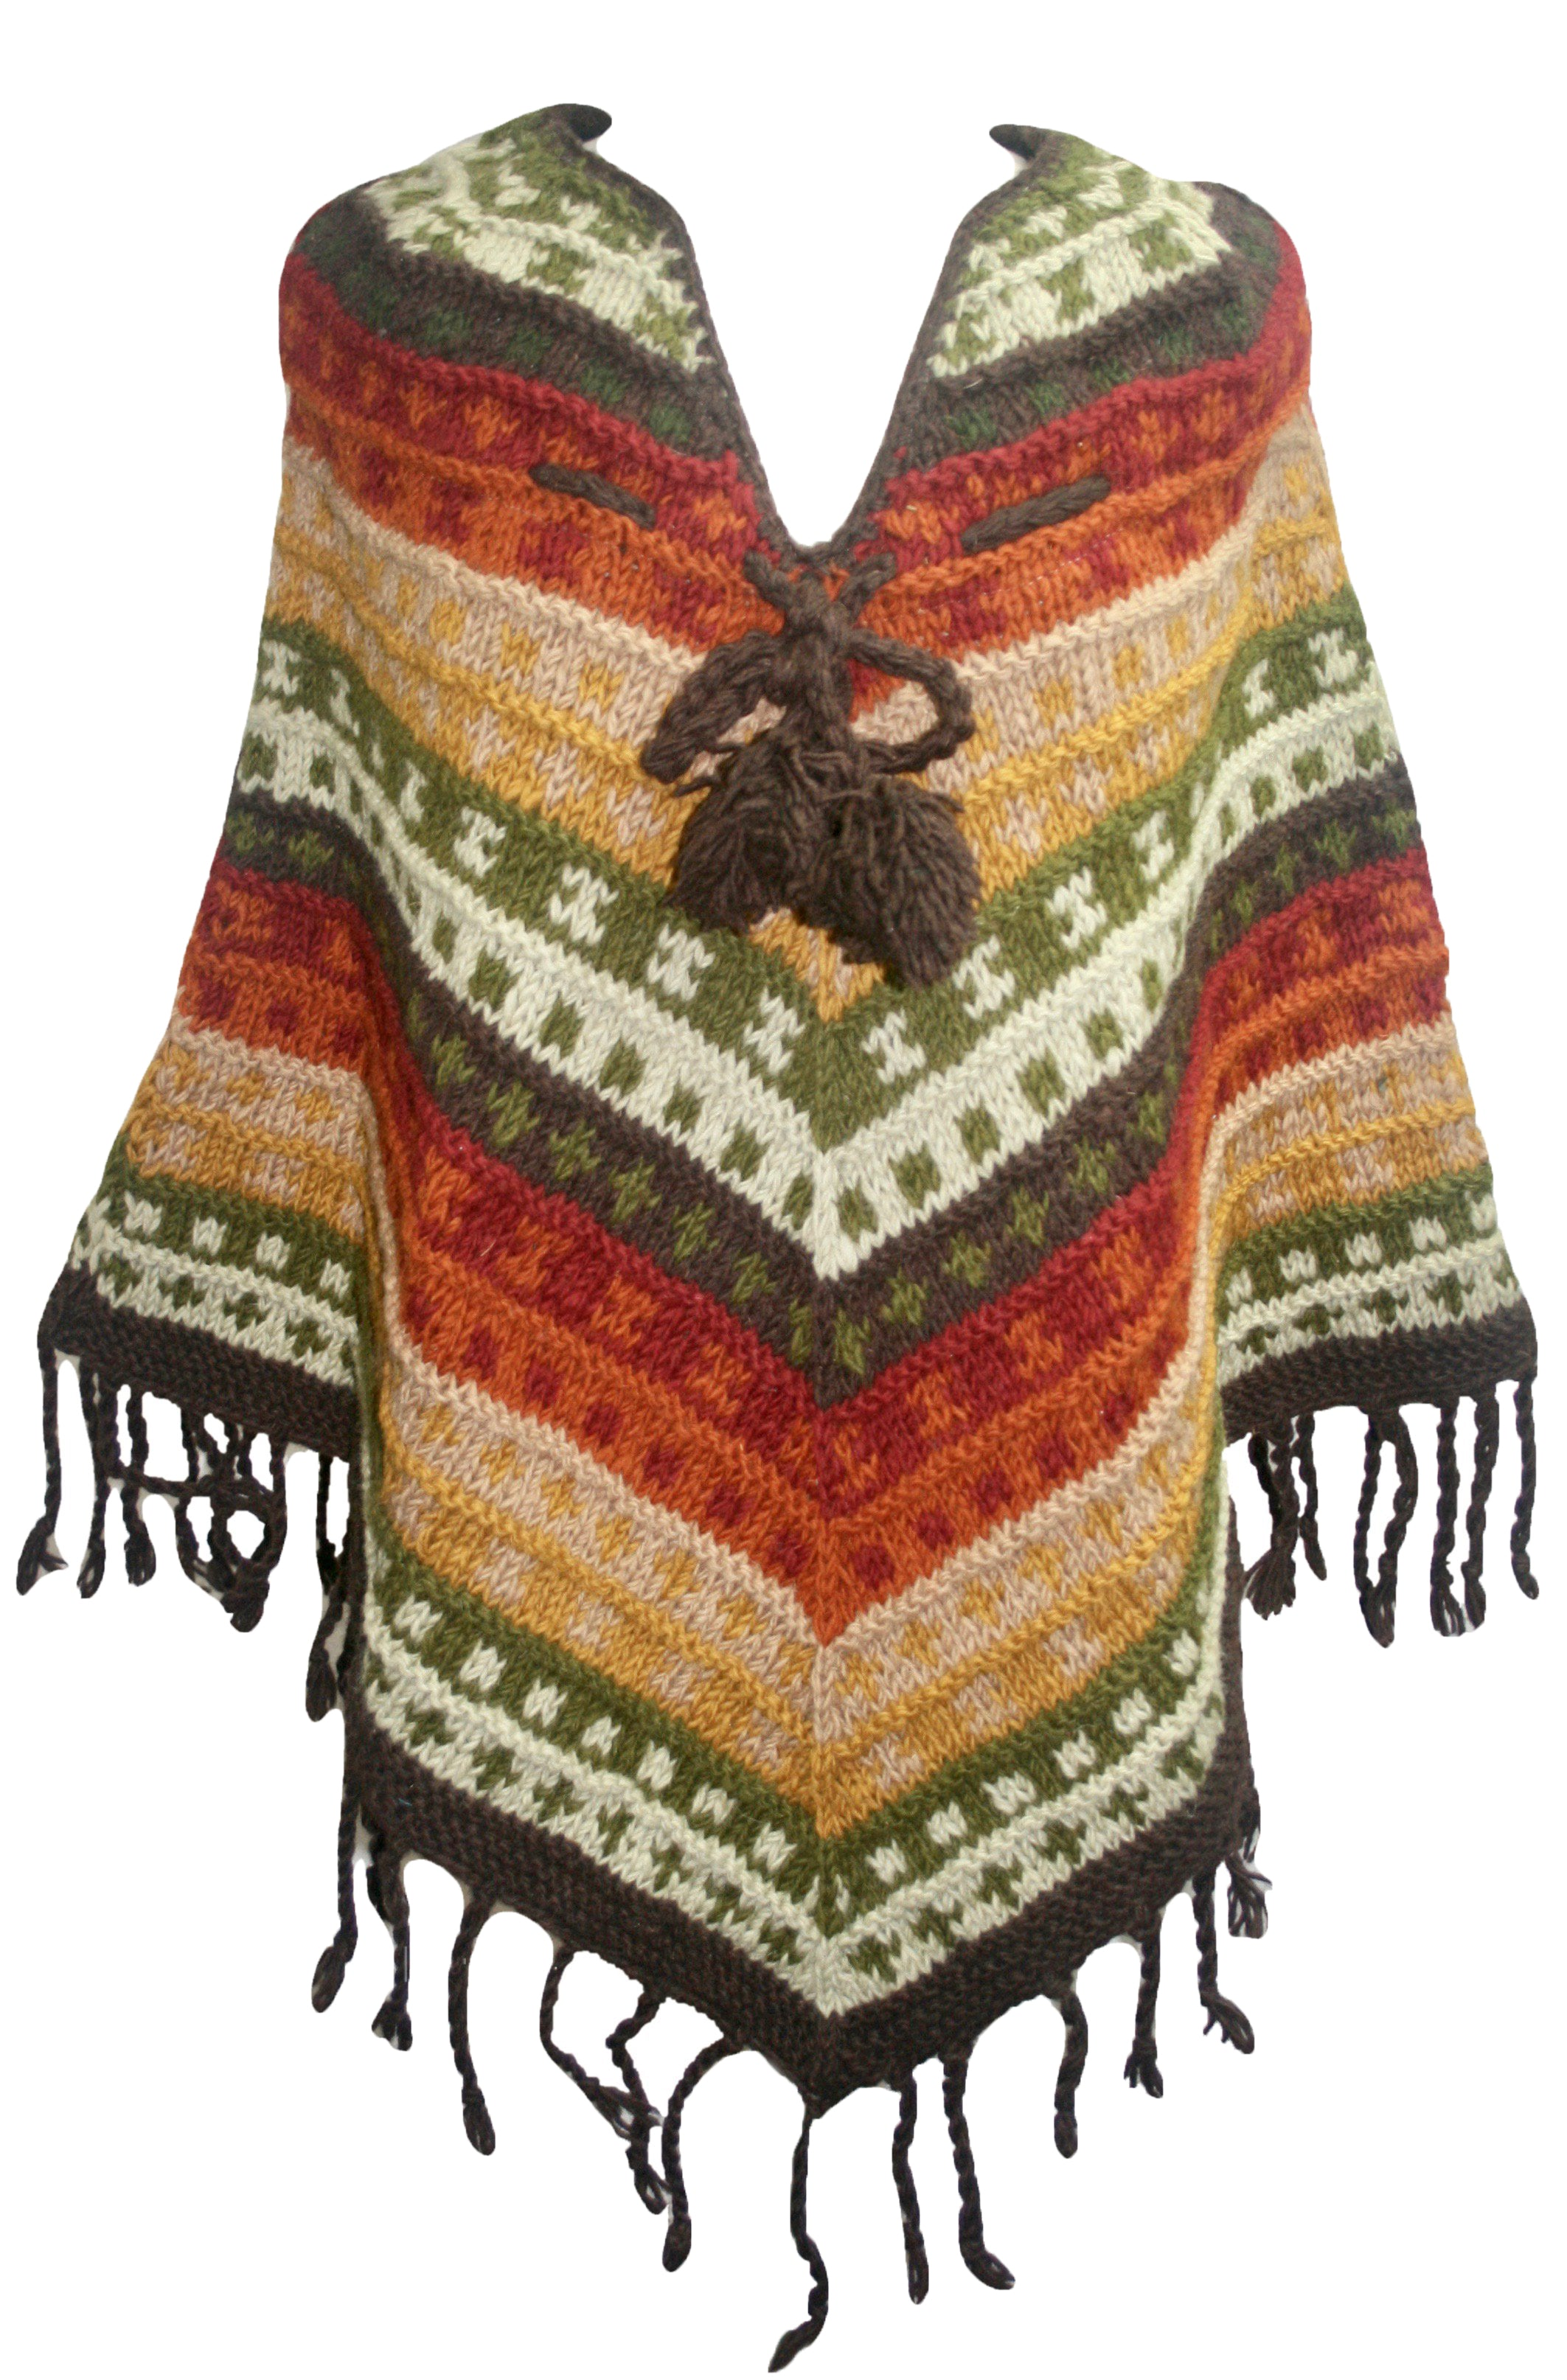 PN 200 Himalayan Thick Sheep Wool Hand Knitted Poncho - Agan Traders, PN 200 16